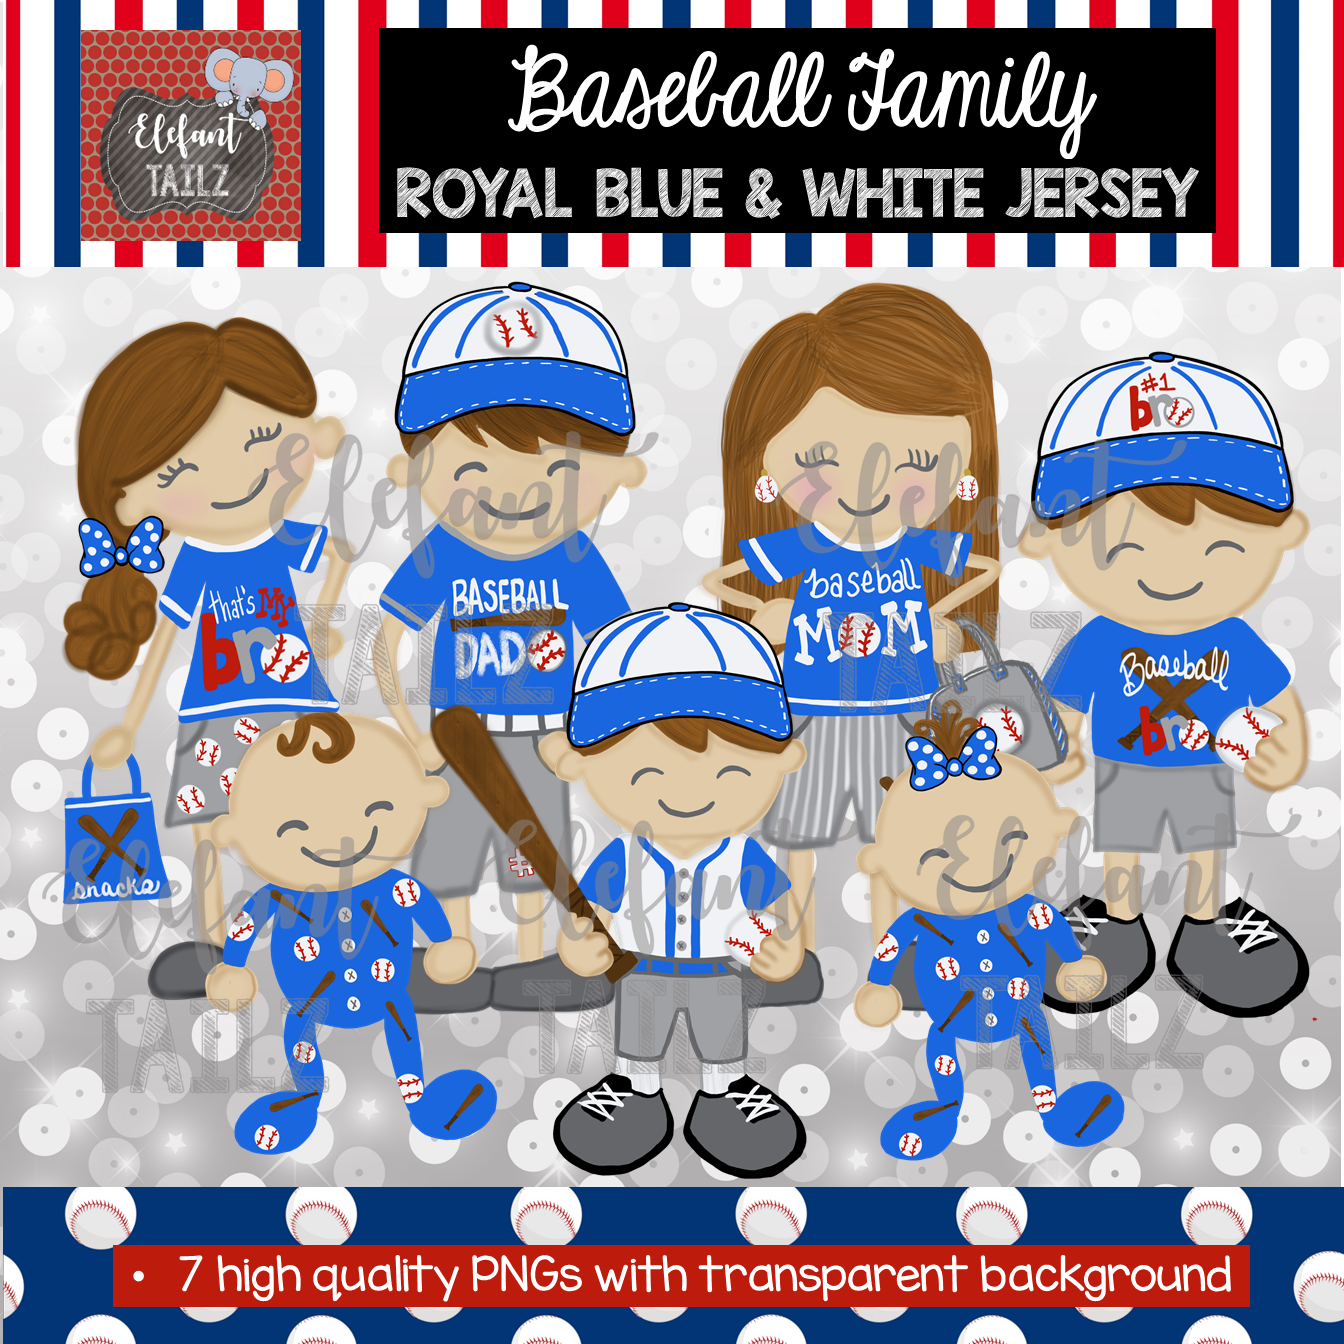 Baseball Family - Brown Hair - Royal Blue & White Jersey